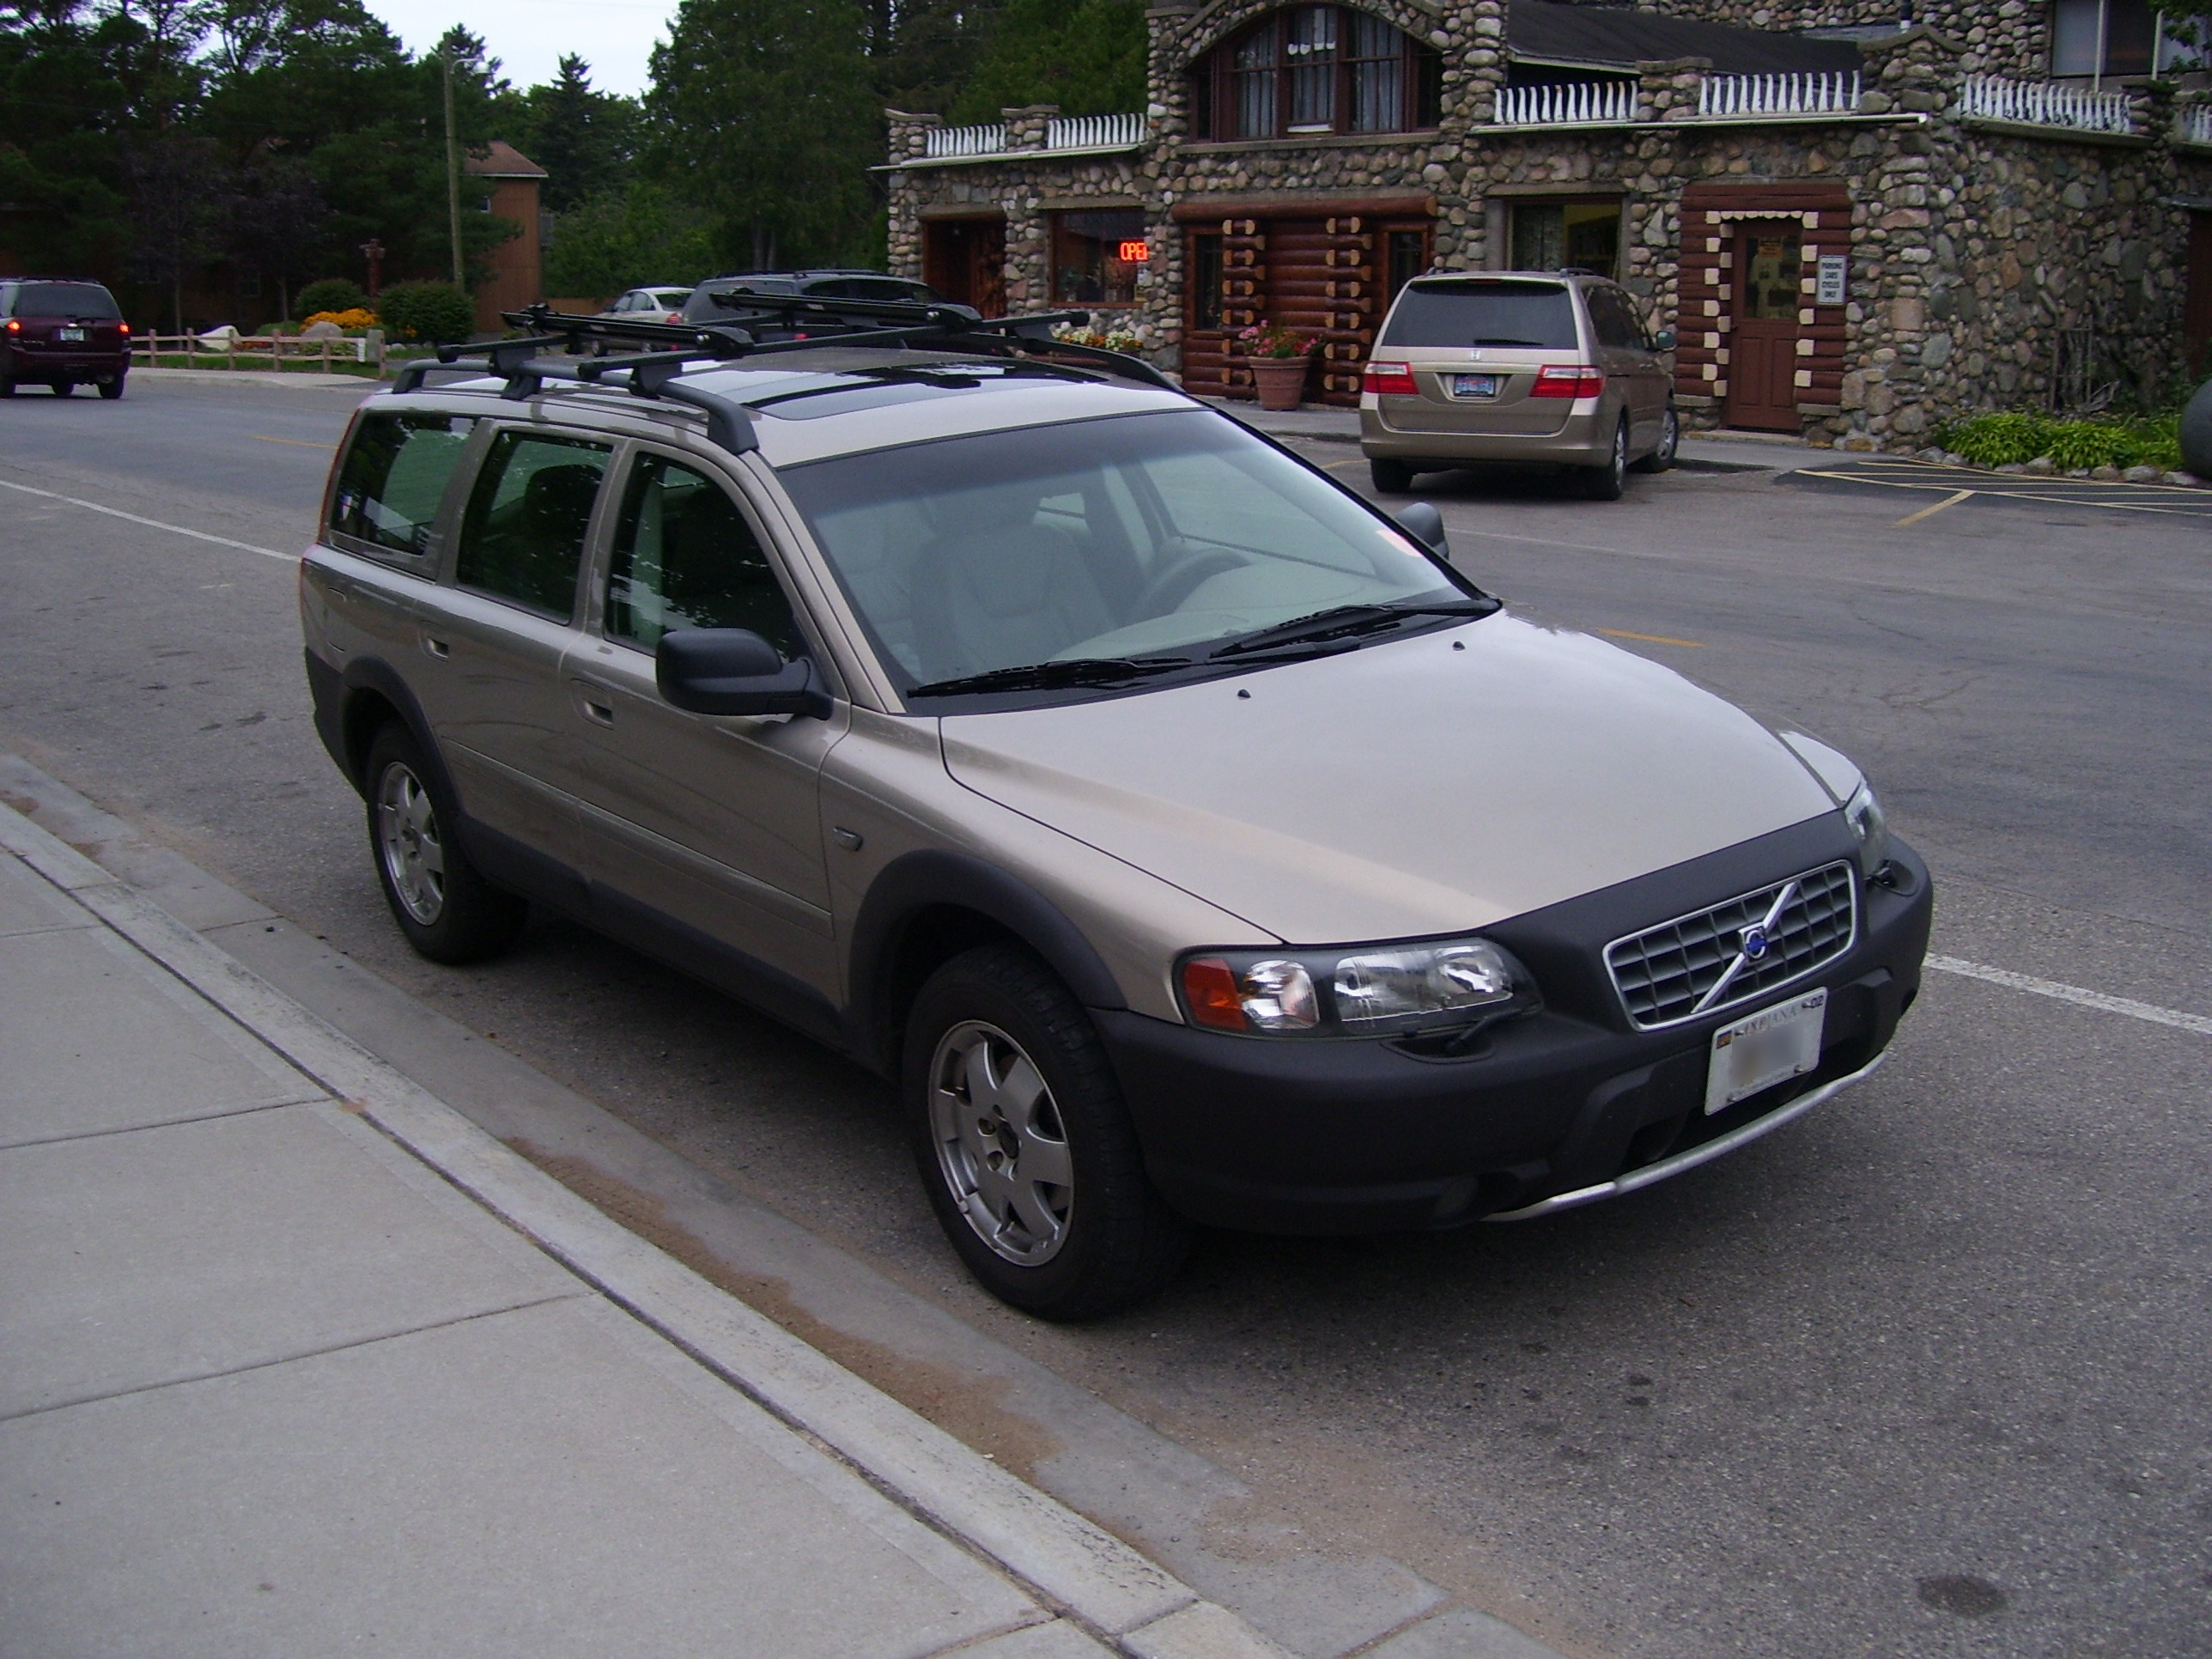 Volvo V70 Related Imagesstart 250 Weili Automotive Network 2004 Xc70 Cross Country Description Xc 2002